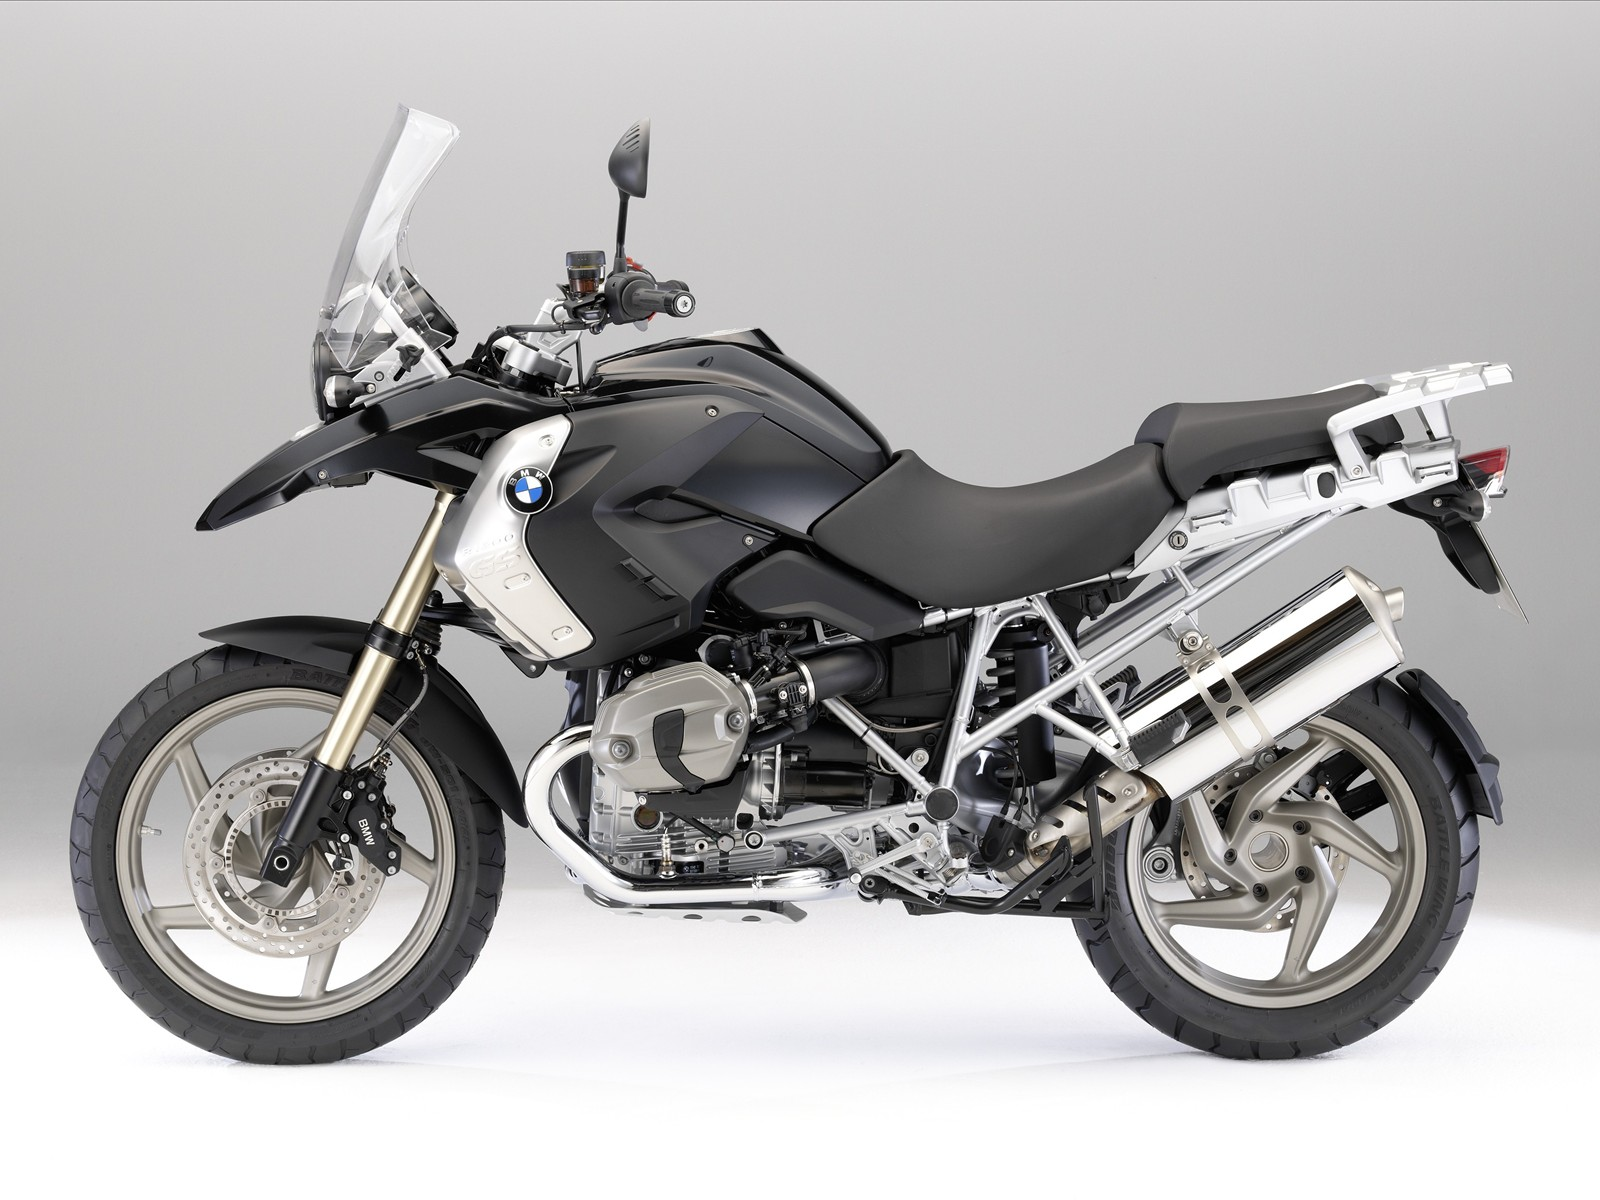 http://1.bp.blogspot.com/_71VYESfu88A/SwIG035lNYI/AAAAAAAABNs/5KIfqvuAPGo/s1600/The-New-BMW-R-1200-GS-Adventure-18.jpg